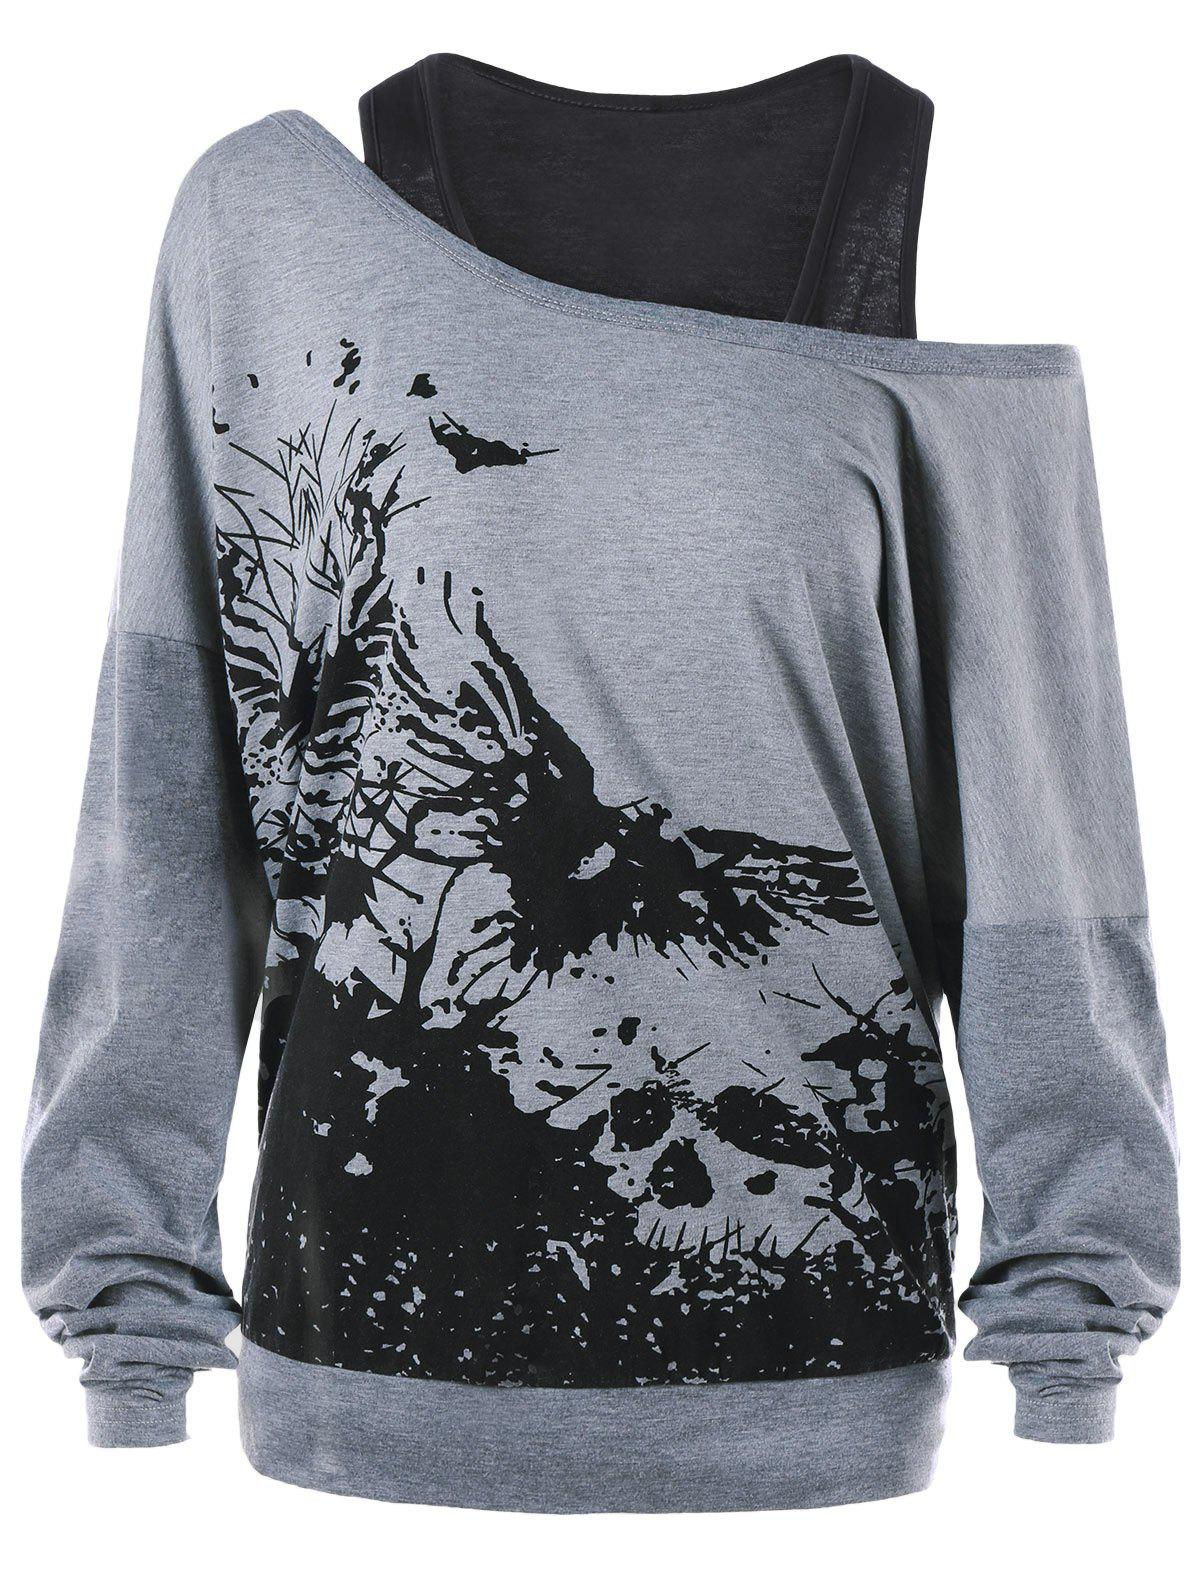 Ink Painting Plus Size Sweatshirt with Tank TopWOMEN<br><br>Size: 5XL; Color: GRAY; Material: Polyester; Shirt Length: Regular; Sleeve Length: Full; Style: Casual; Pattern Style: Print; Season: Fall,Spring,Winter; Weight: 0.4300kg; Package Contents: 1 x Sweatshirt  1 x Tank Top;